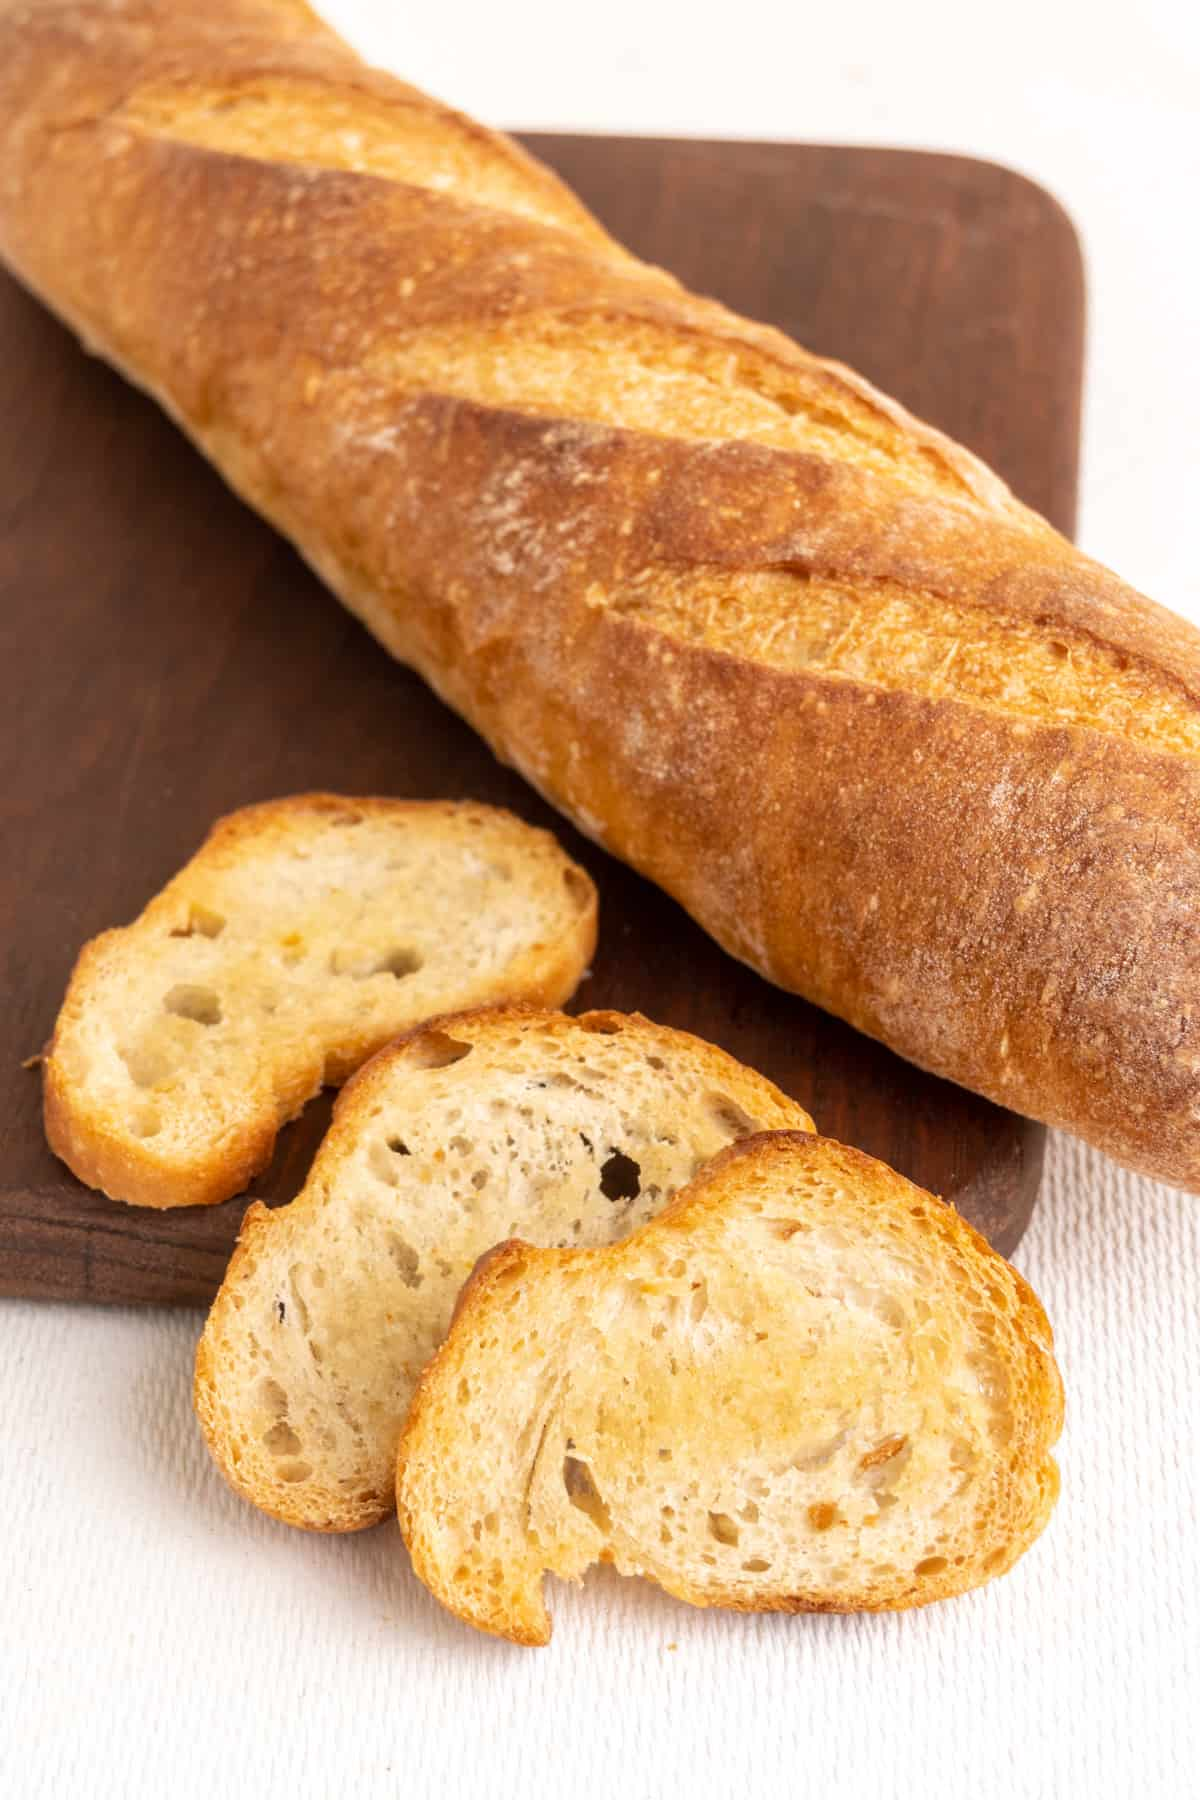 Three crostini, which are crispy baked thin slices of bread, next to a baguette on a wooden board.